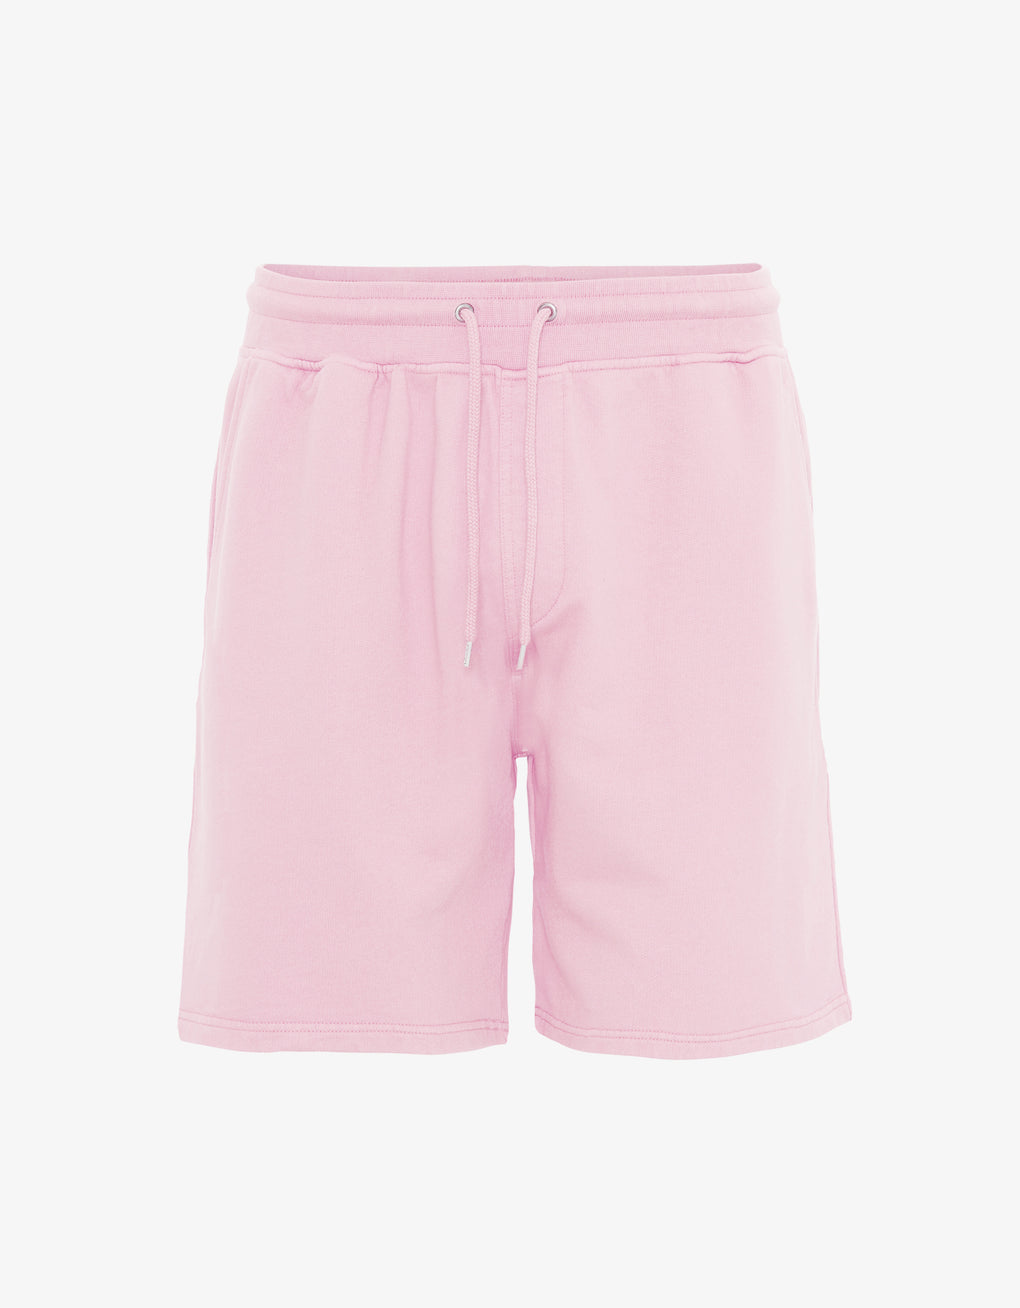 Colorful Standard Classic Organic Sweatshorts Shorts Flamingo Pink